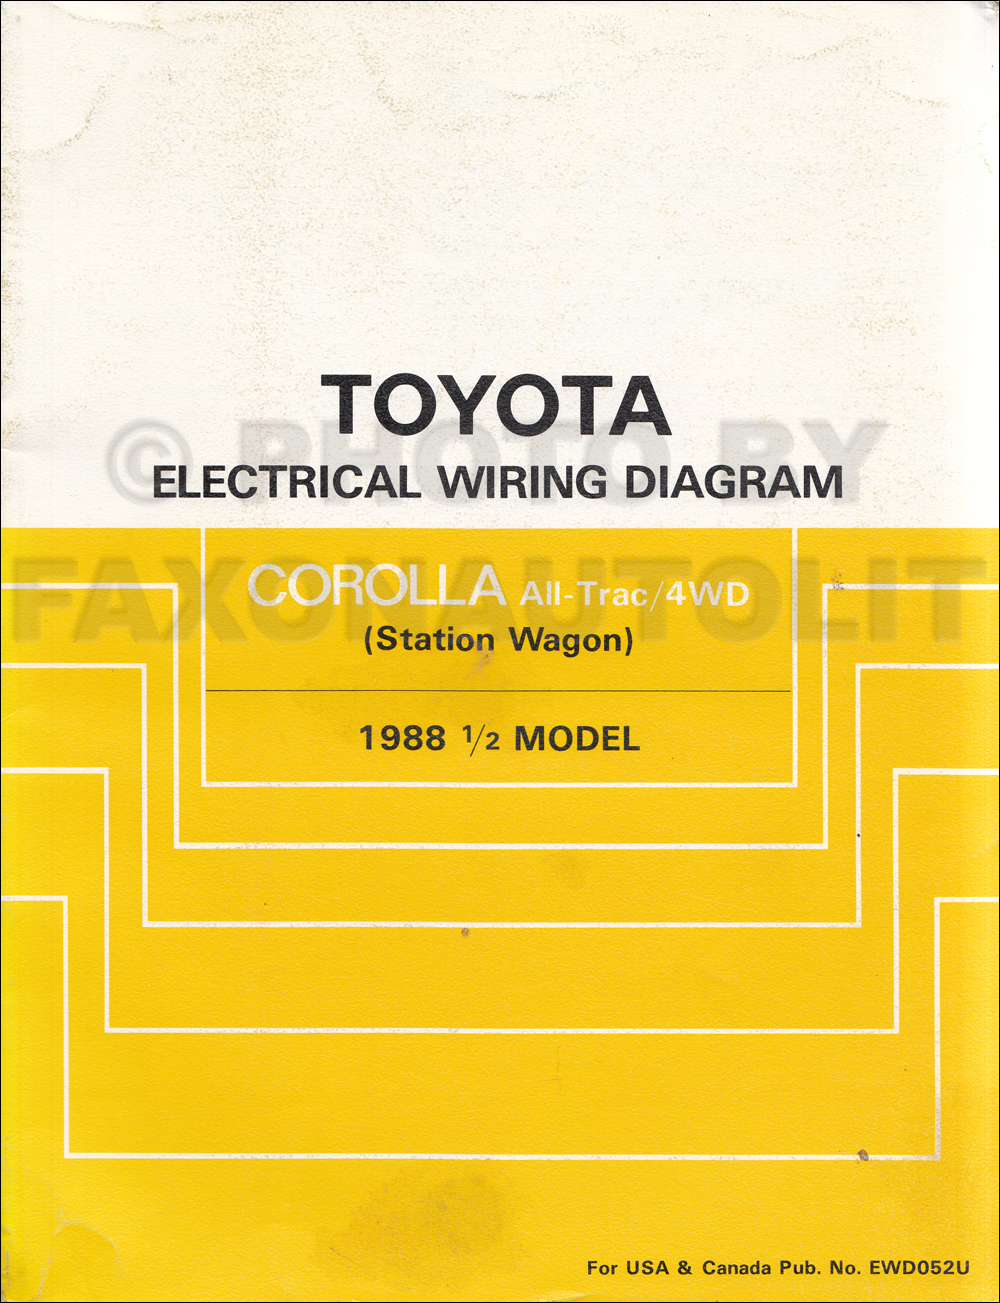 2001 Toyota Corolla Wiring Diagram Manual Original Library 07 Tundra Radio Wire 1988 All Trac 4wd Station Wagon